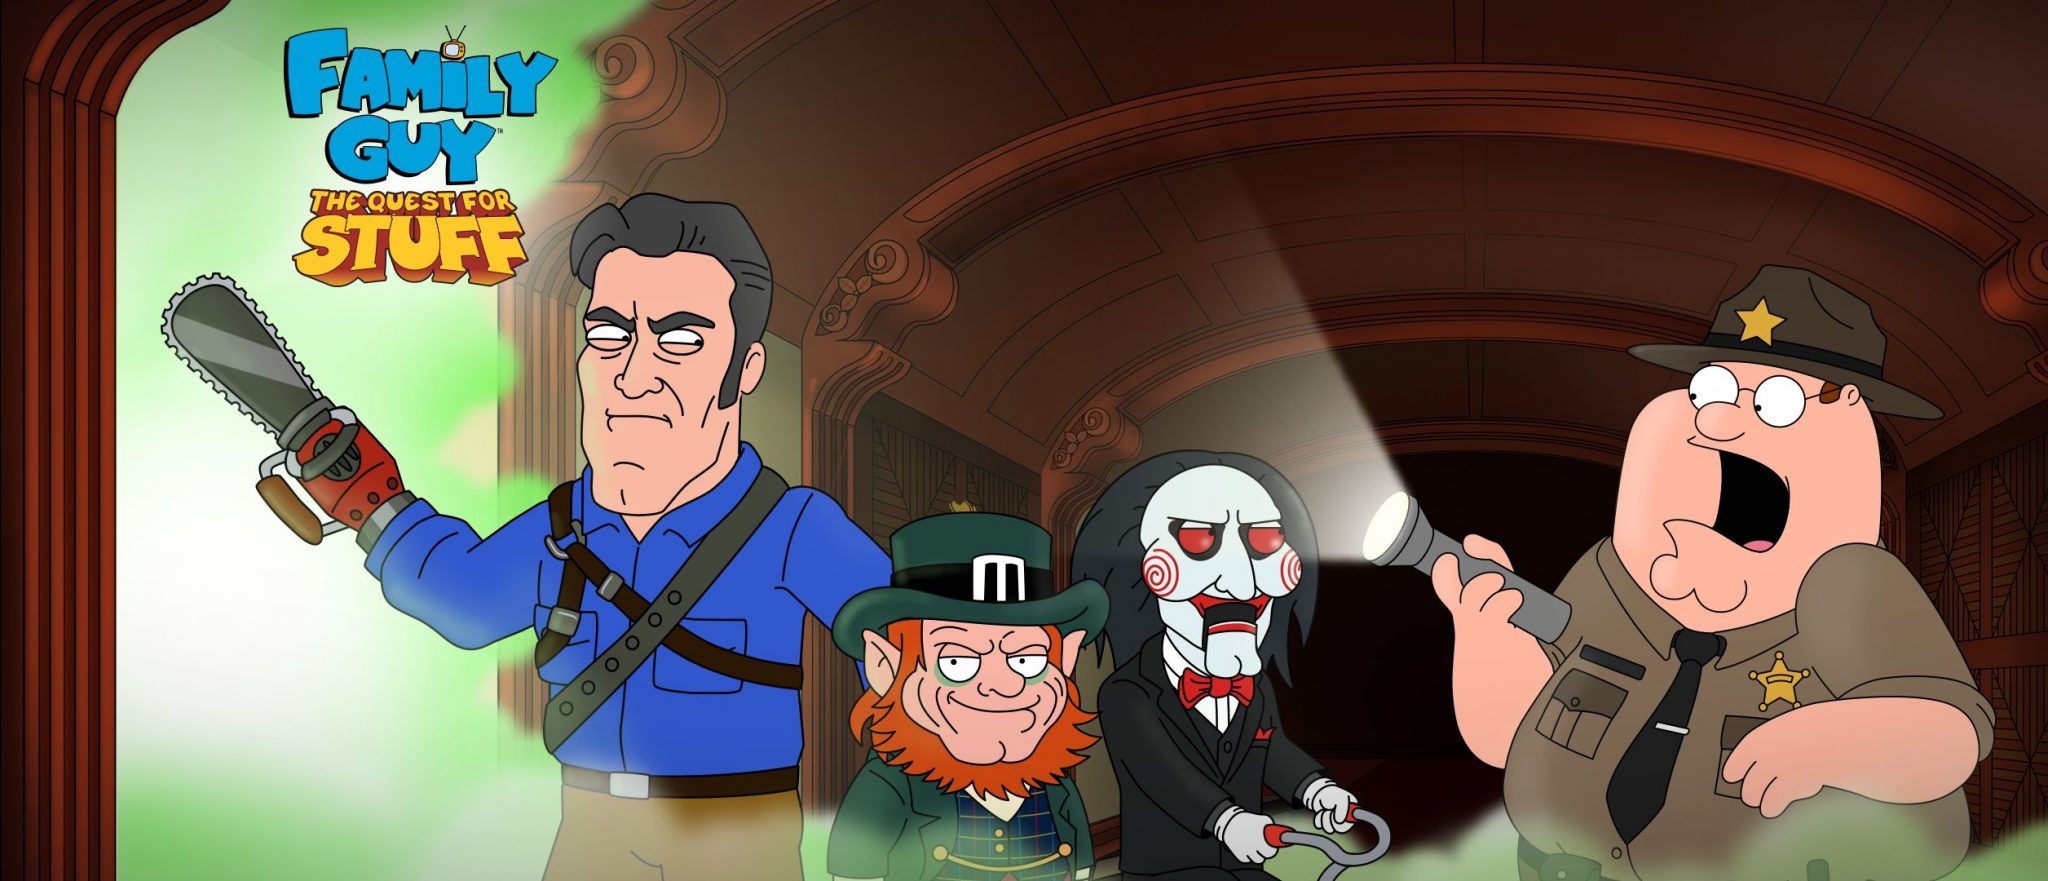 Family Guy The Quest for Stuff - Family Guy Goes on a Quest for Stuff With Horror Icons